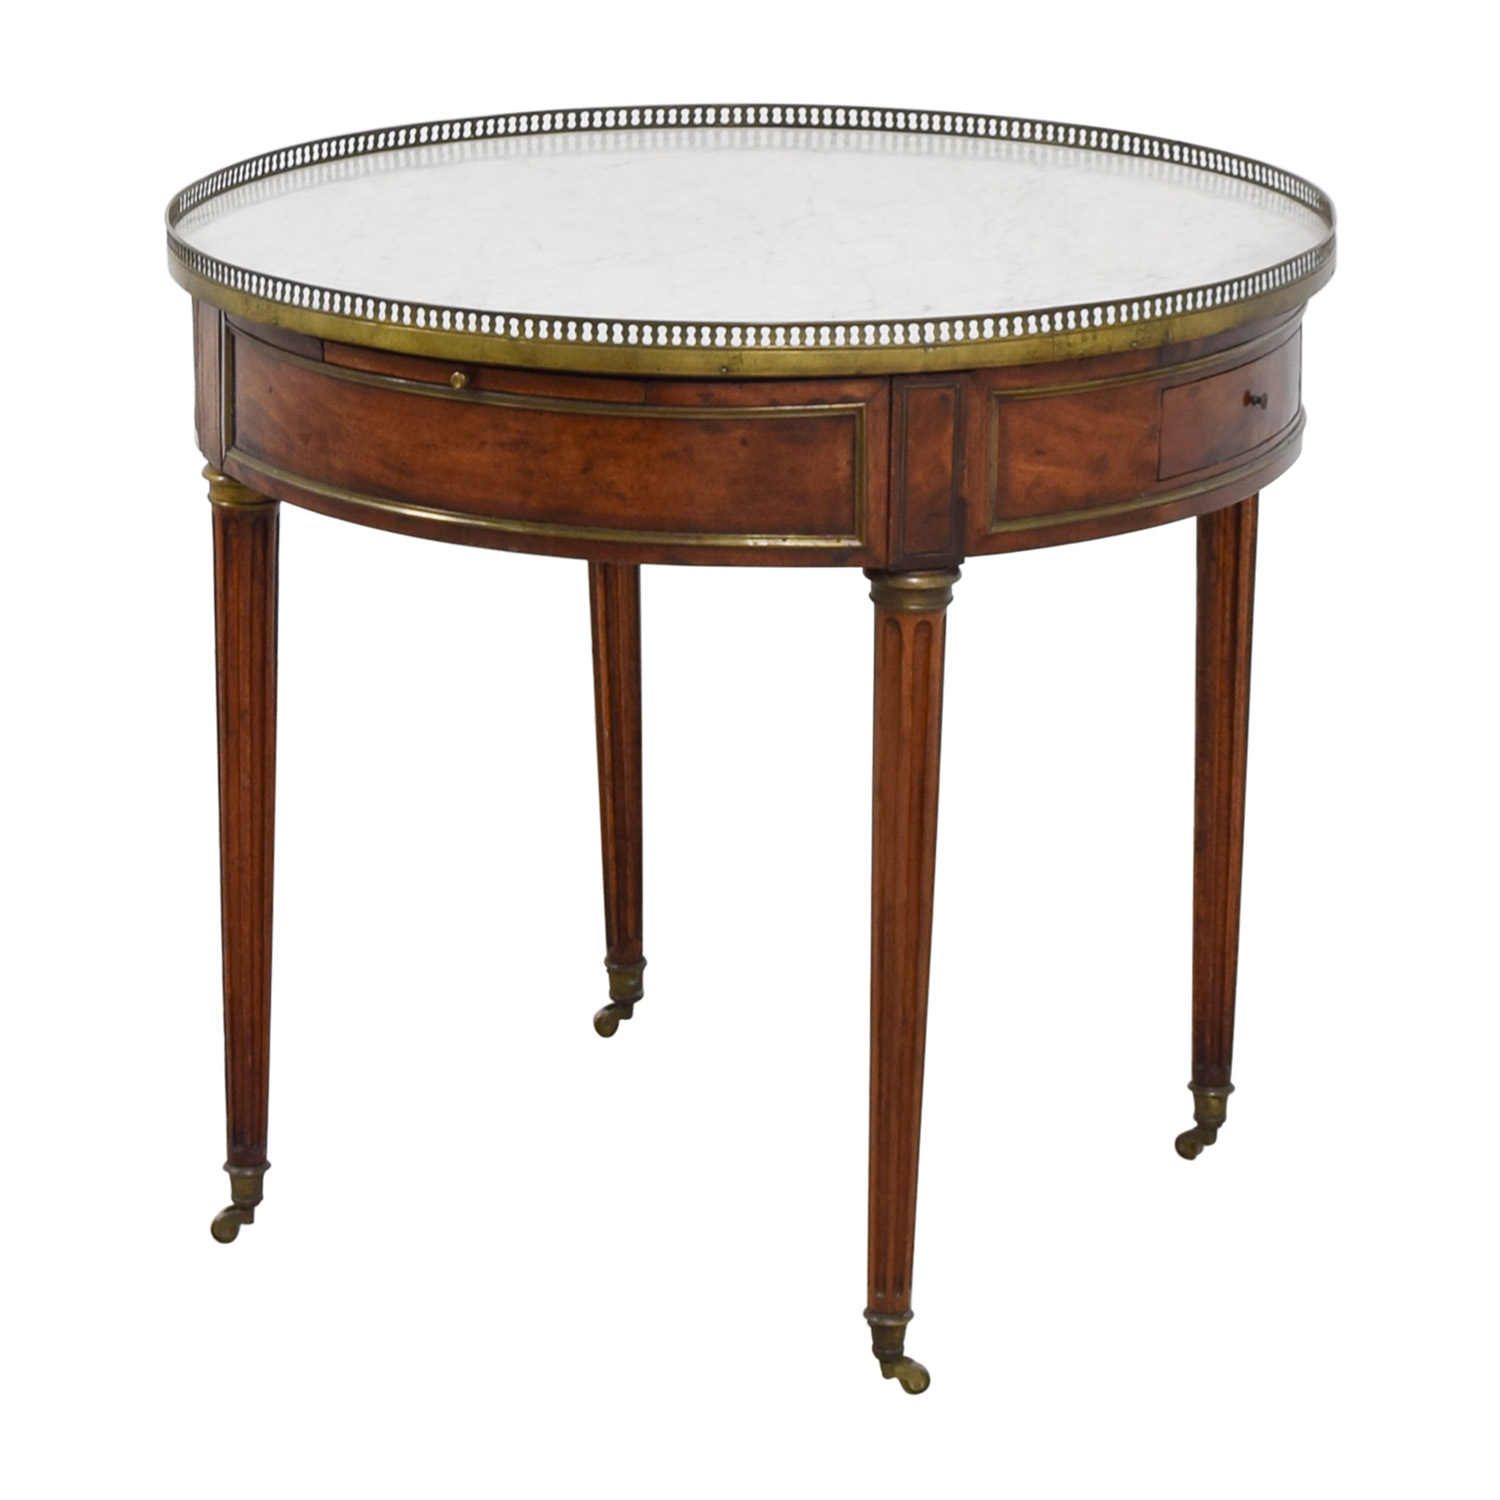 Antique Round Table with Marble Top dimensions